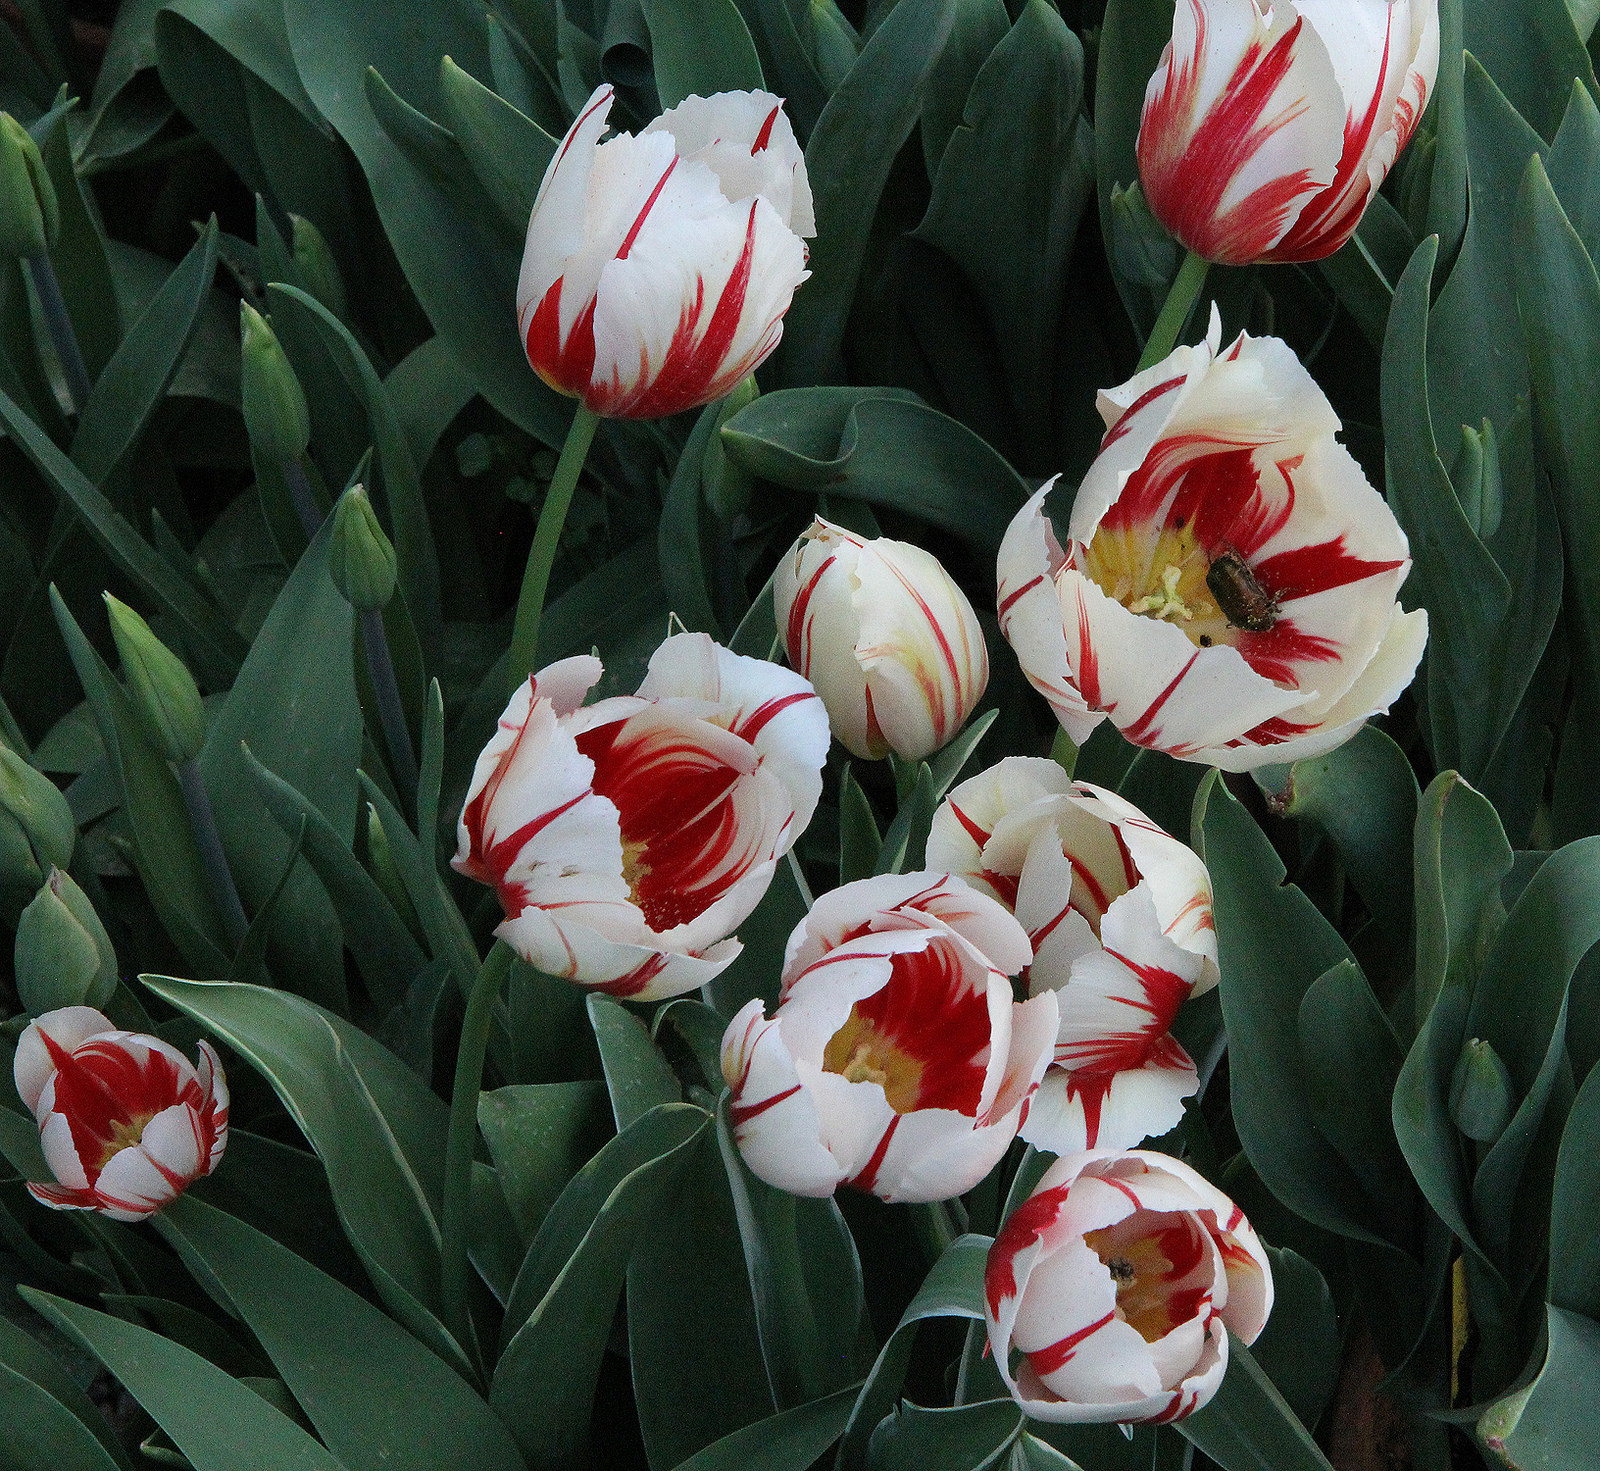 Flowers of <i>Tulipa</i> 'Sorbet'